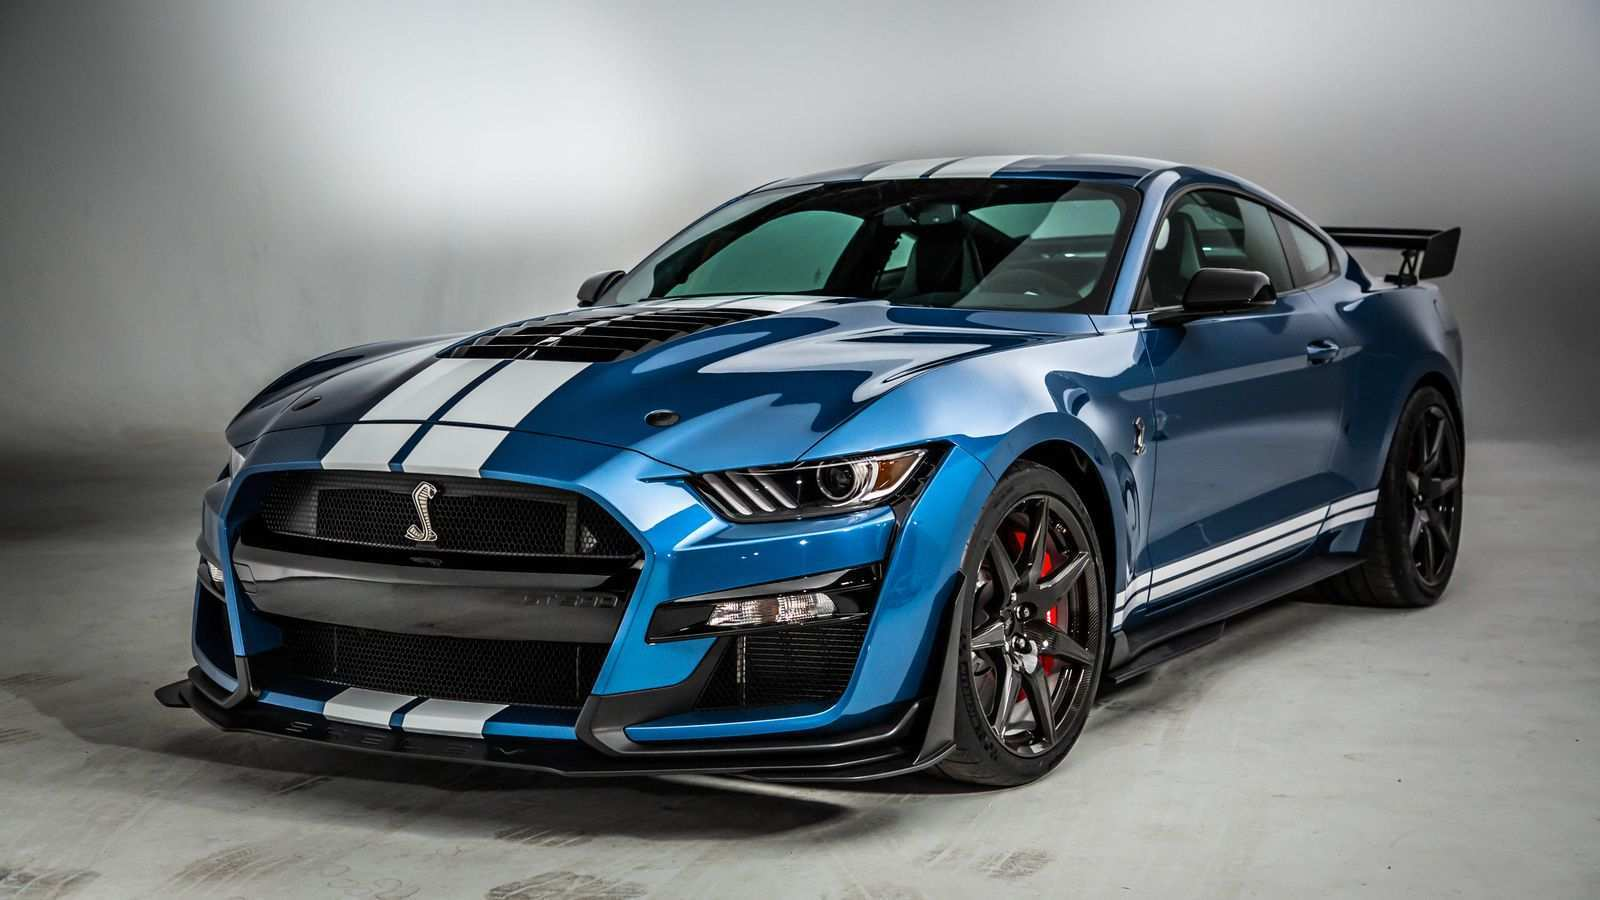 83 The Best 2019 Ford Mustang Gt500 New Model And Performance